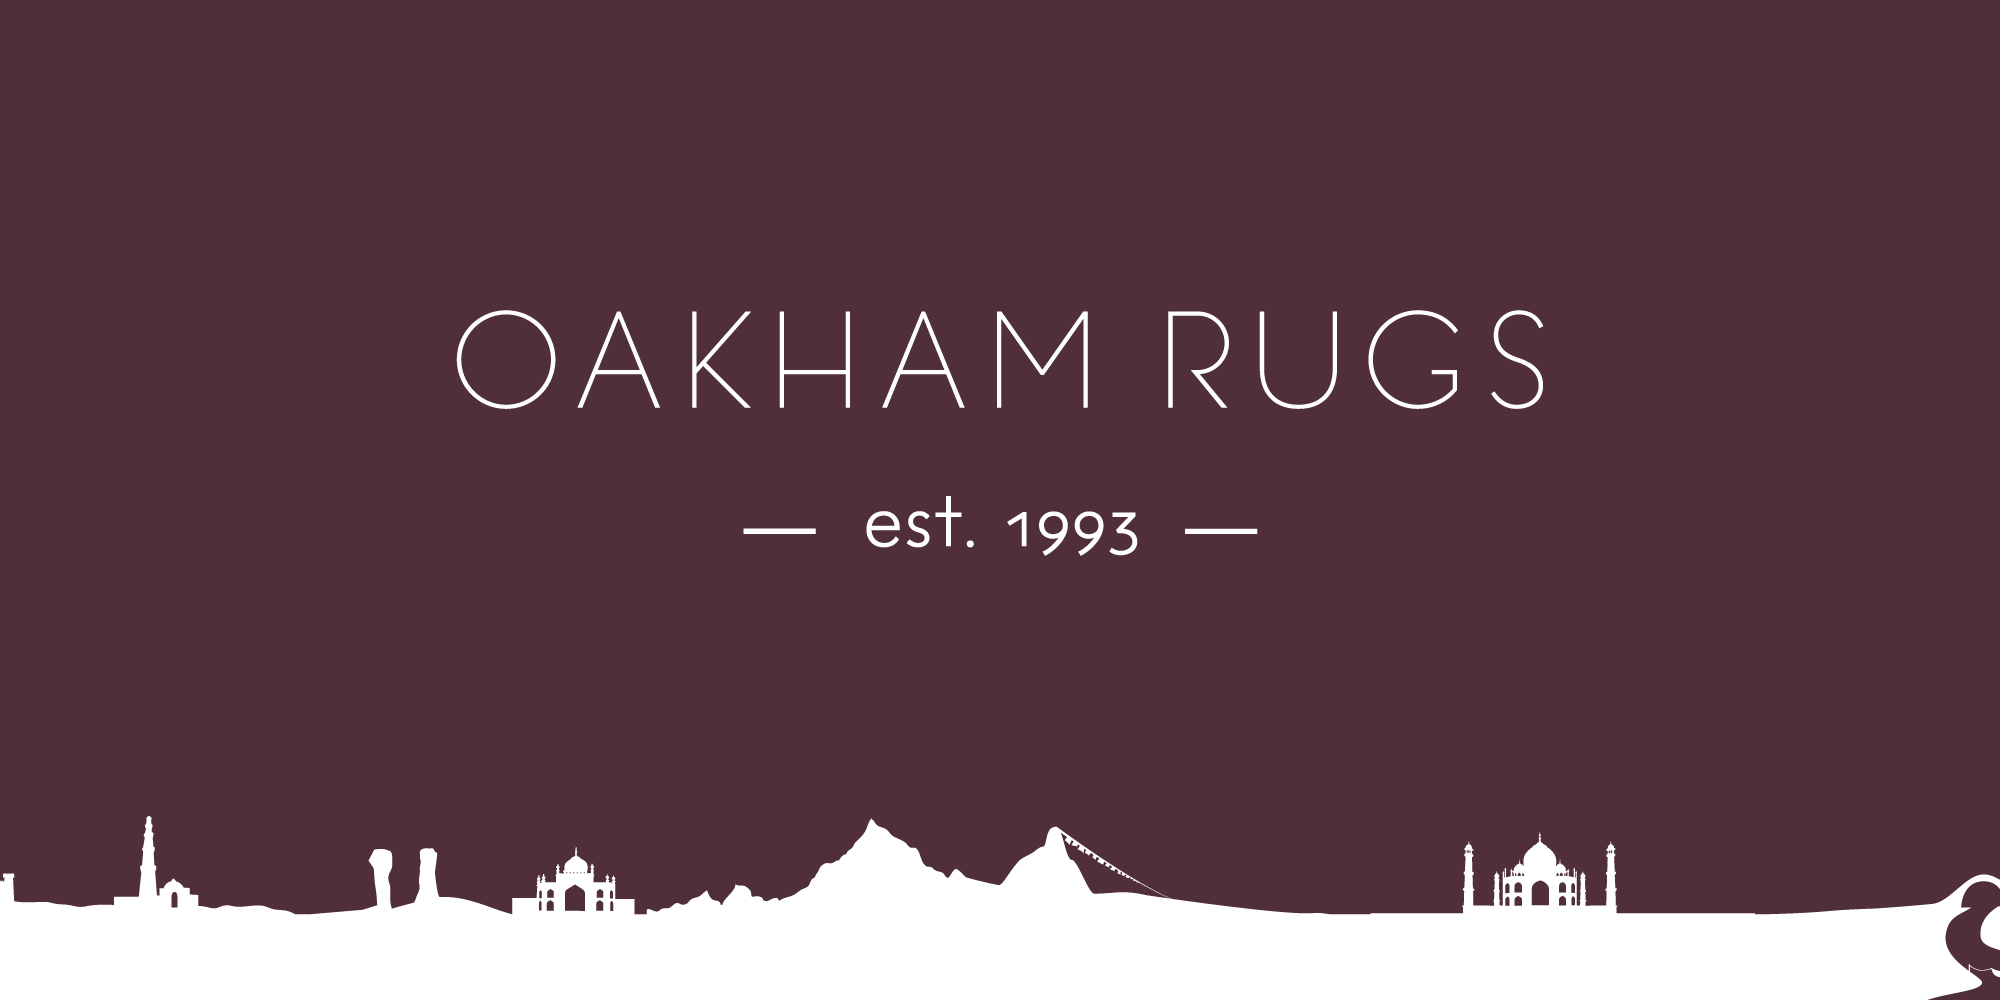 Oakham Rugs brand; logo and scene from Persia and the middle east along the bottom of the image.